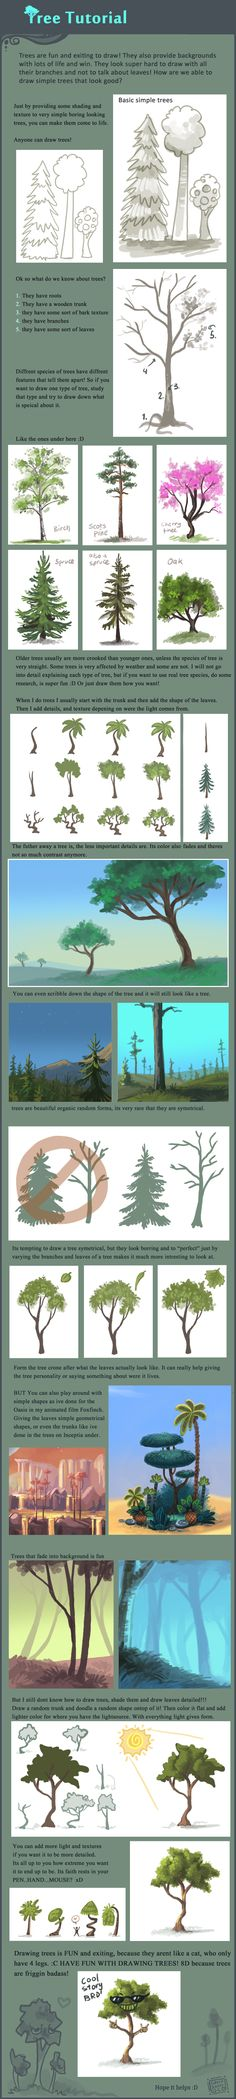 Tree tutorial by griffsnuff.deviantart.com on @deviantART  A guide on trees. Quite basic stuff, but then again, drawing trees with actual leaves is always something I have issues with. I need the help I can get.